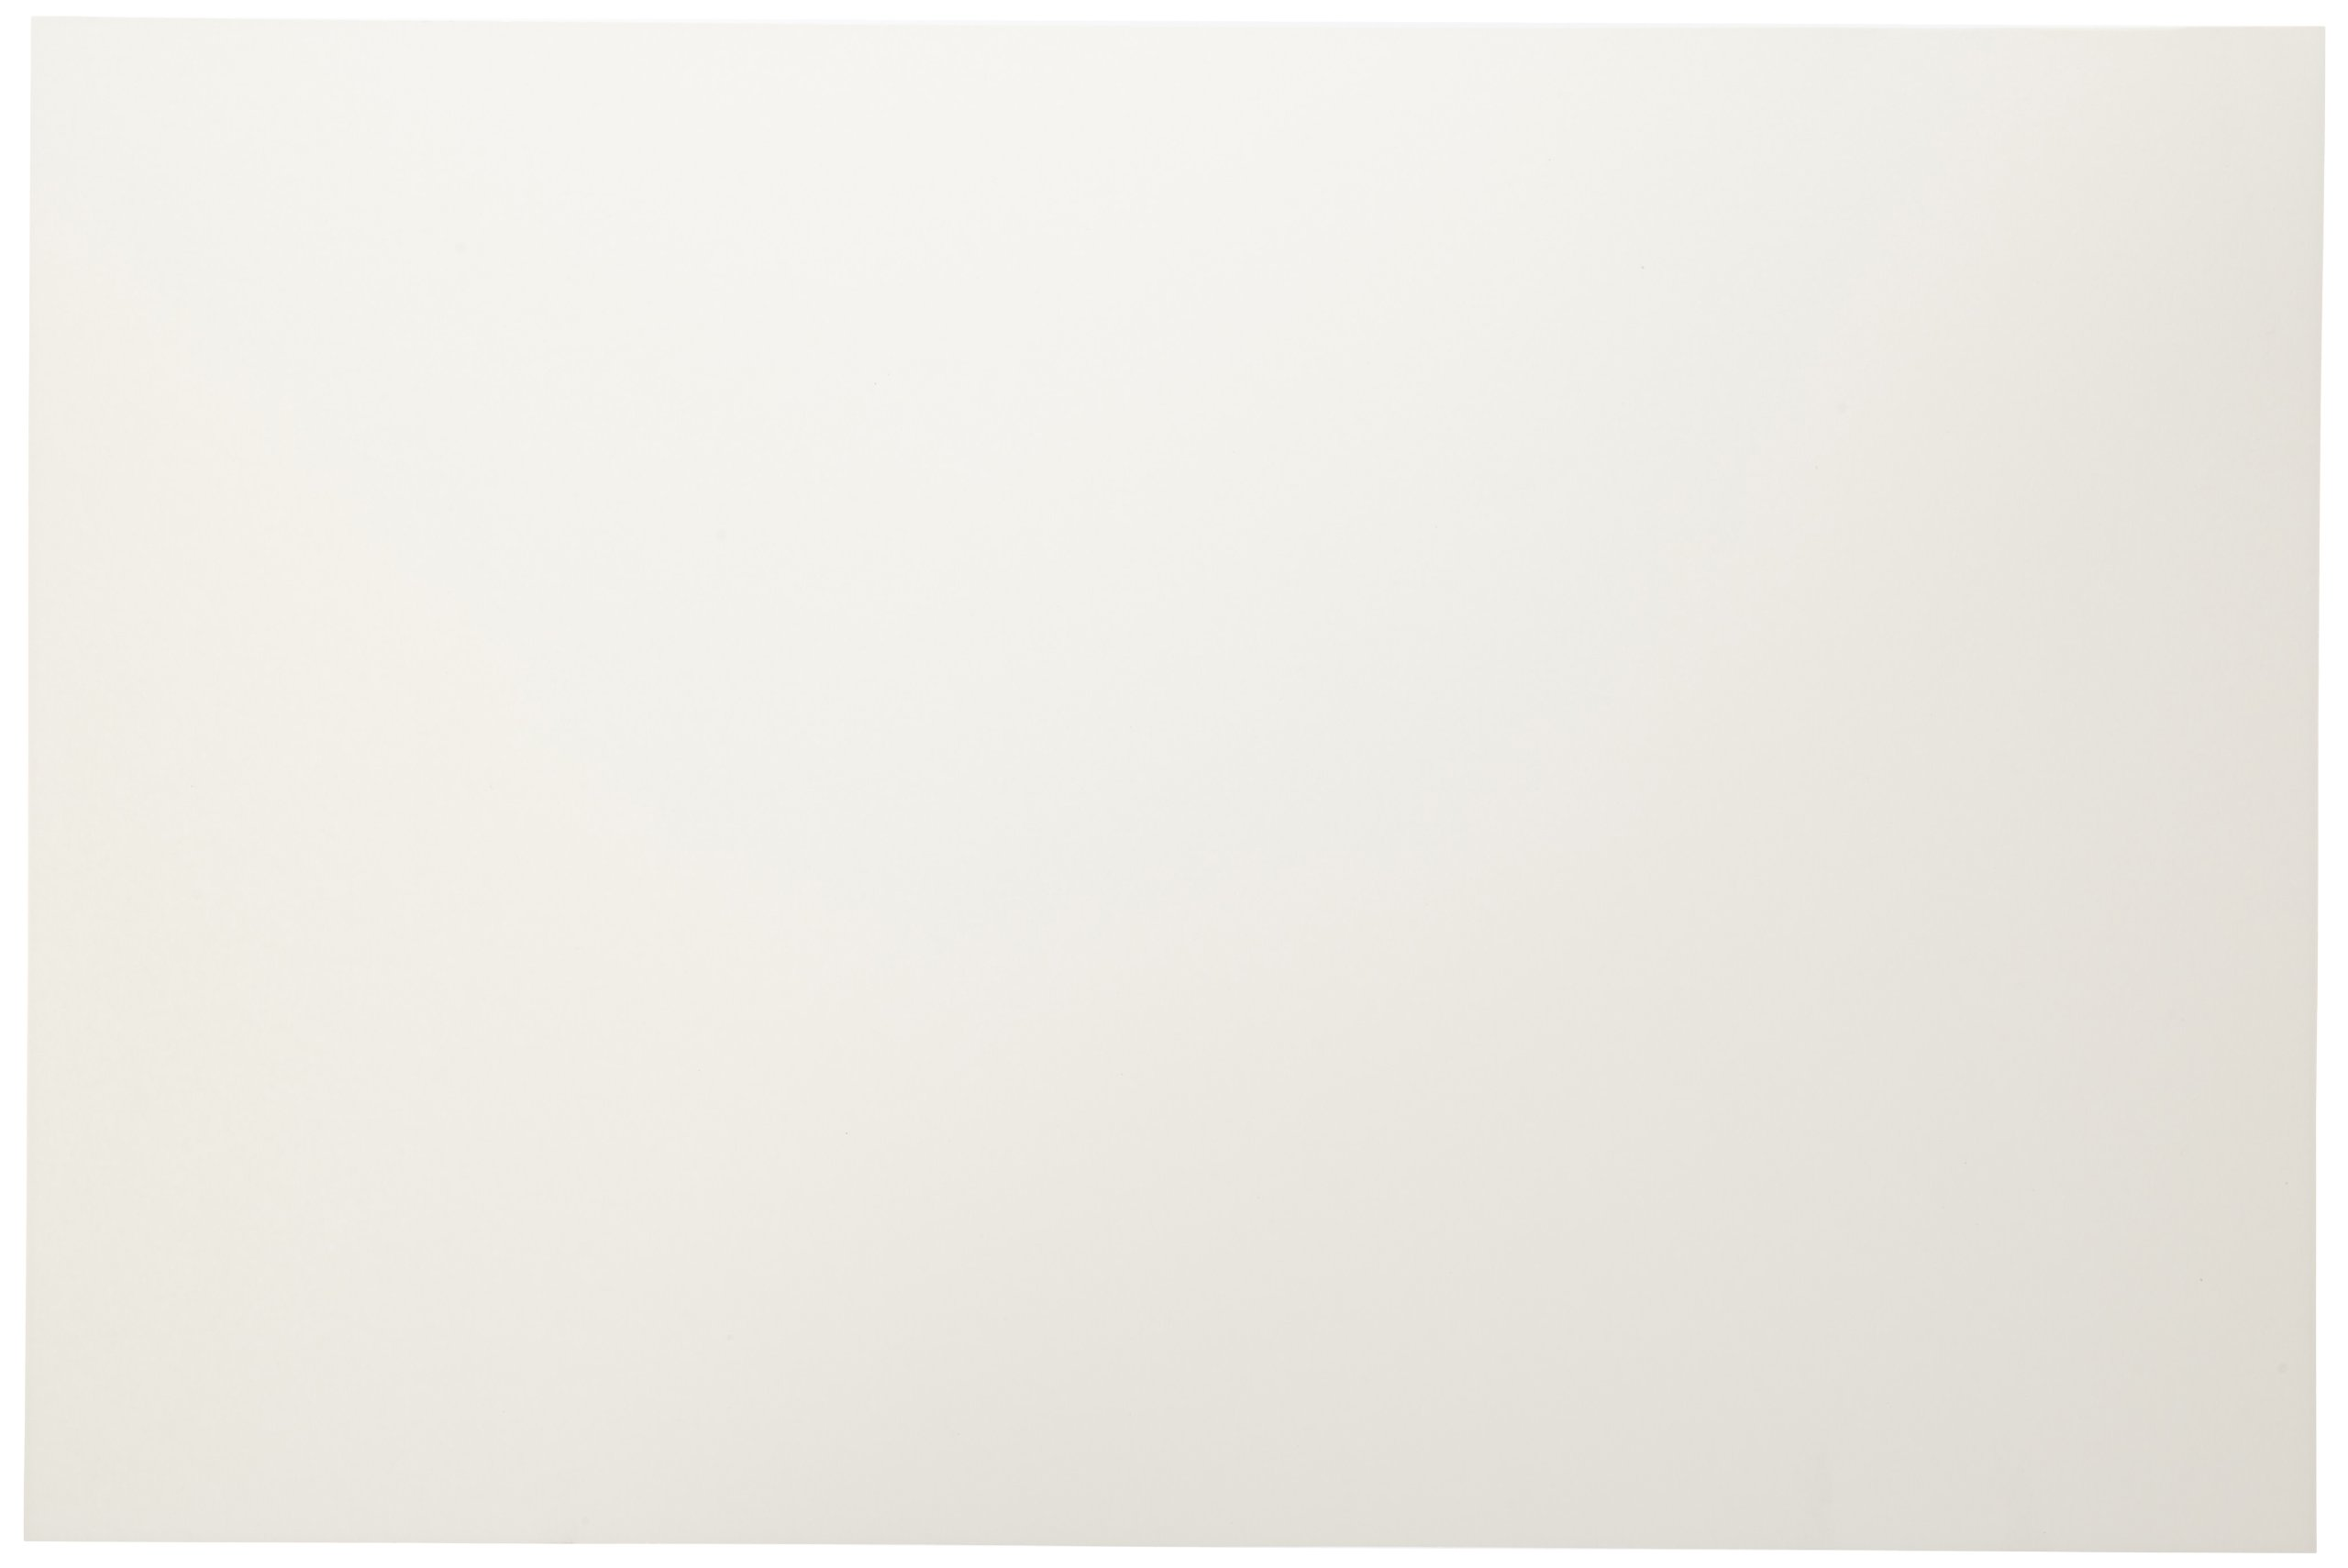 Sax Watercolor Paper, 140 lb, 24 x 36 Inches, Natural White, 100 Sheets - 447290 by Sax